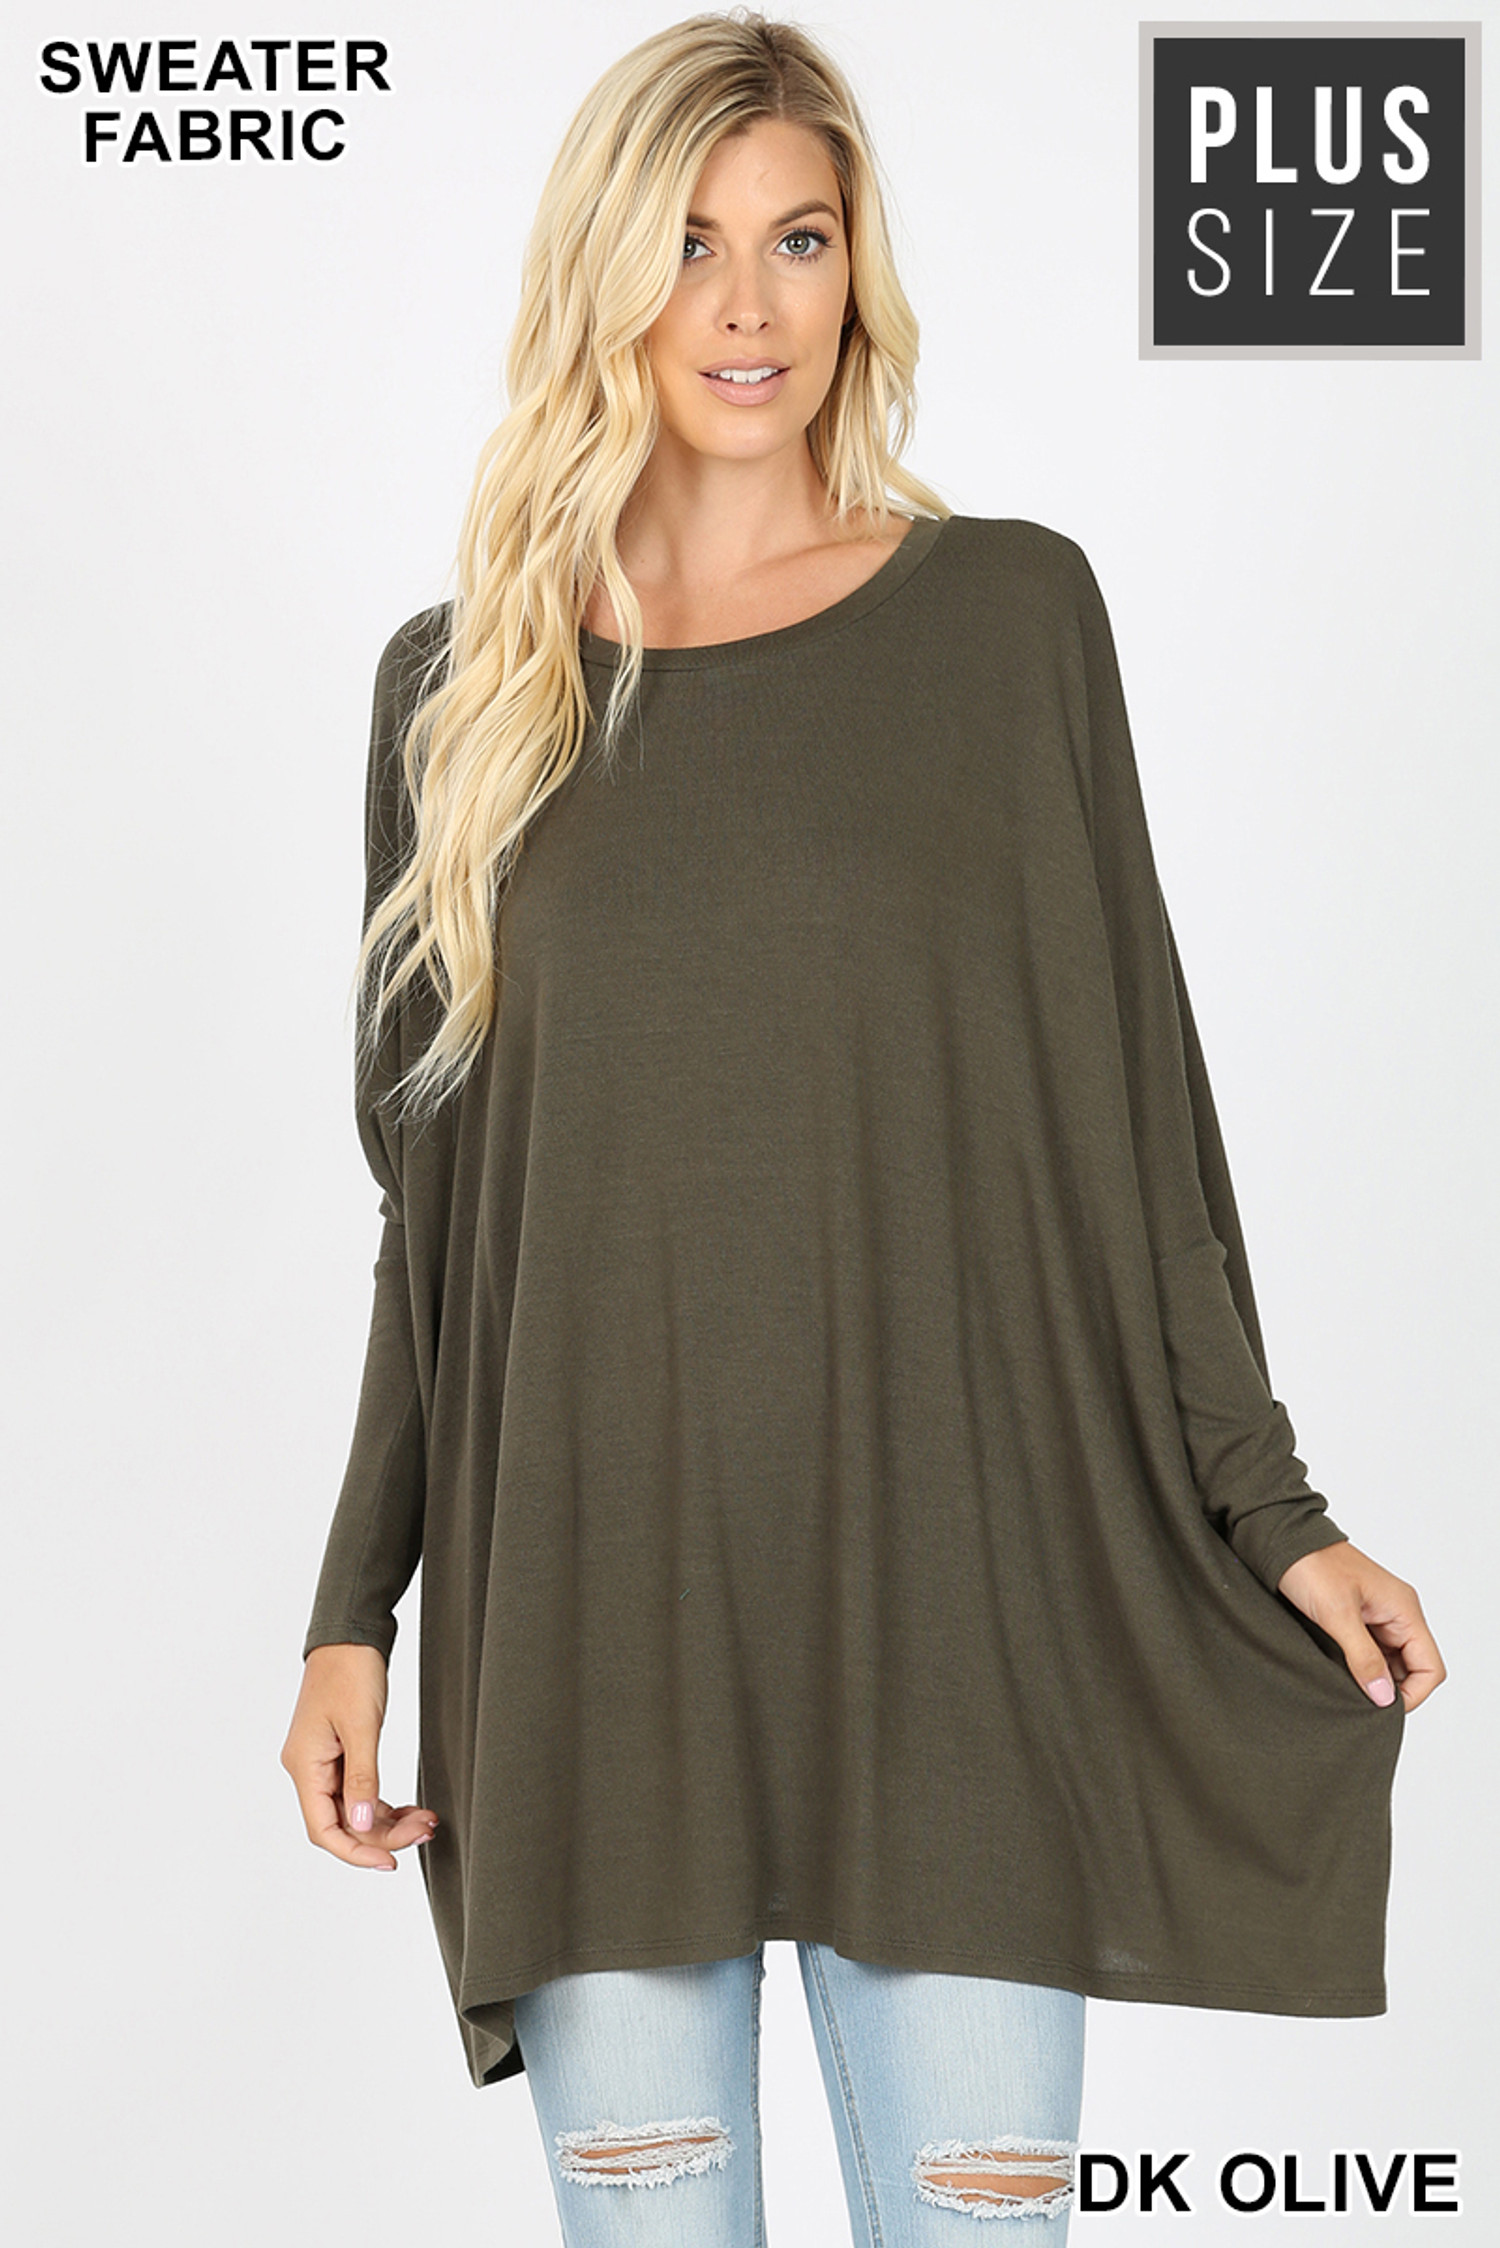 Oversized Round Neck Poncho Plus Size Sweater